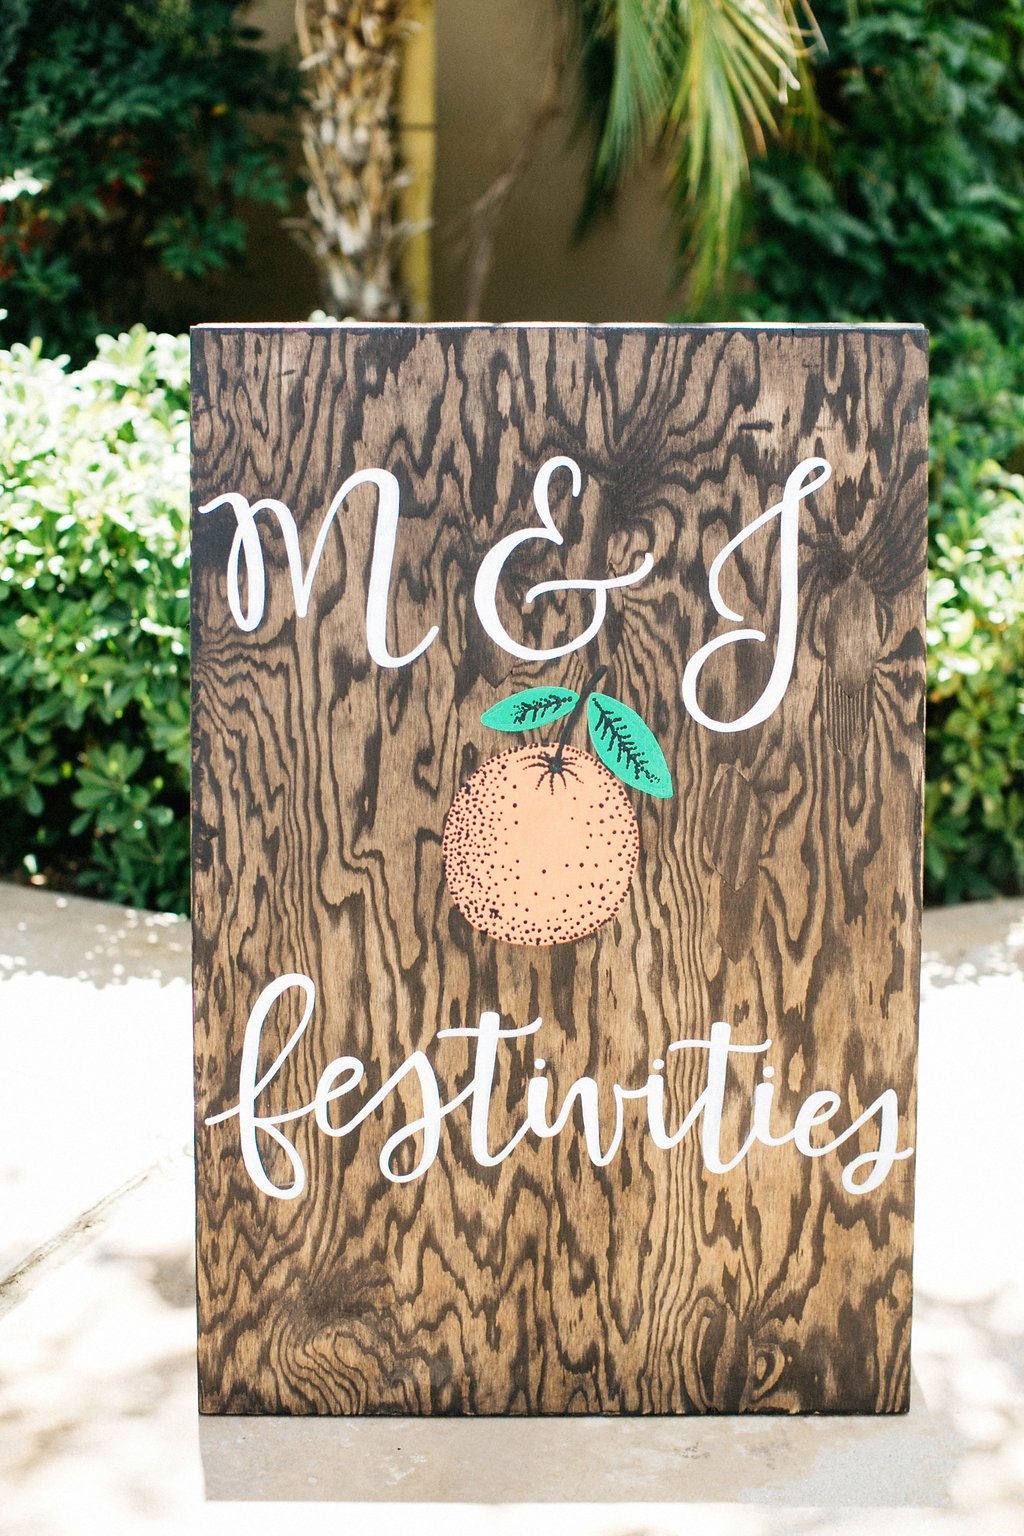 Custom Citrus calligraphy sign for wedding